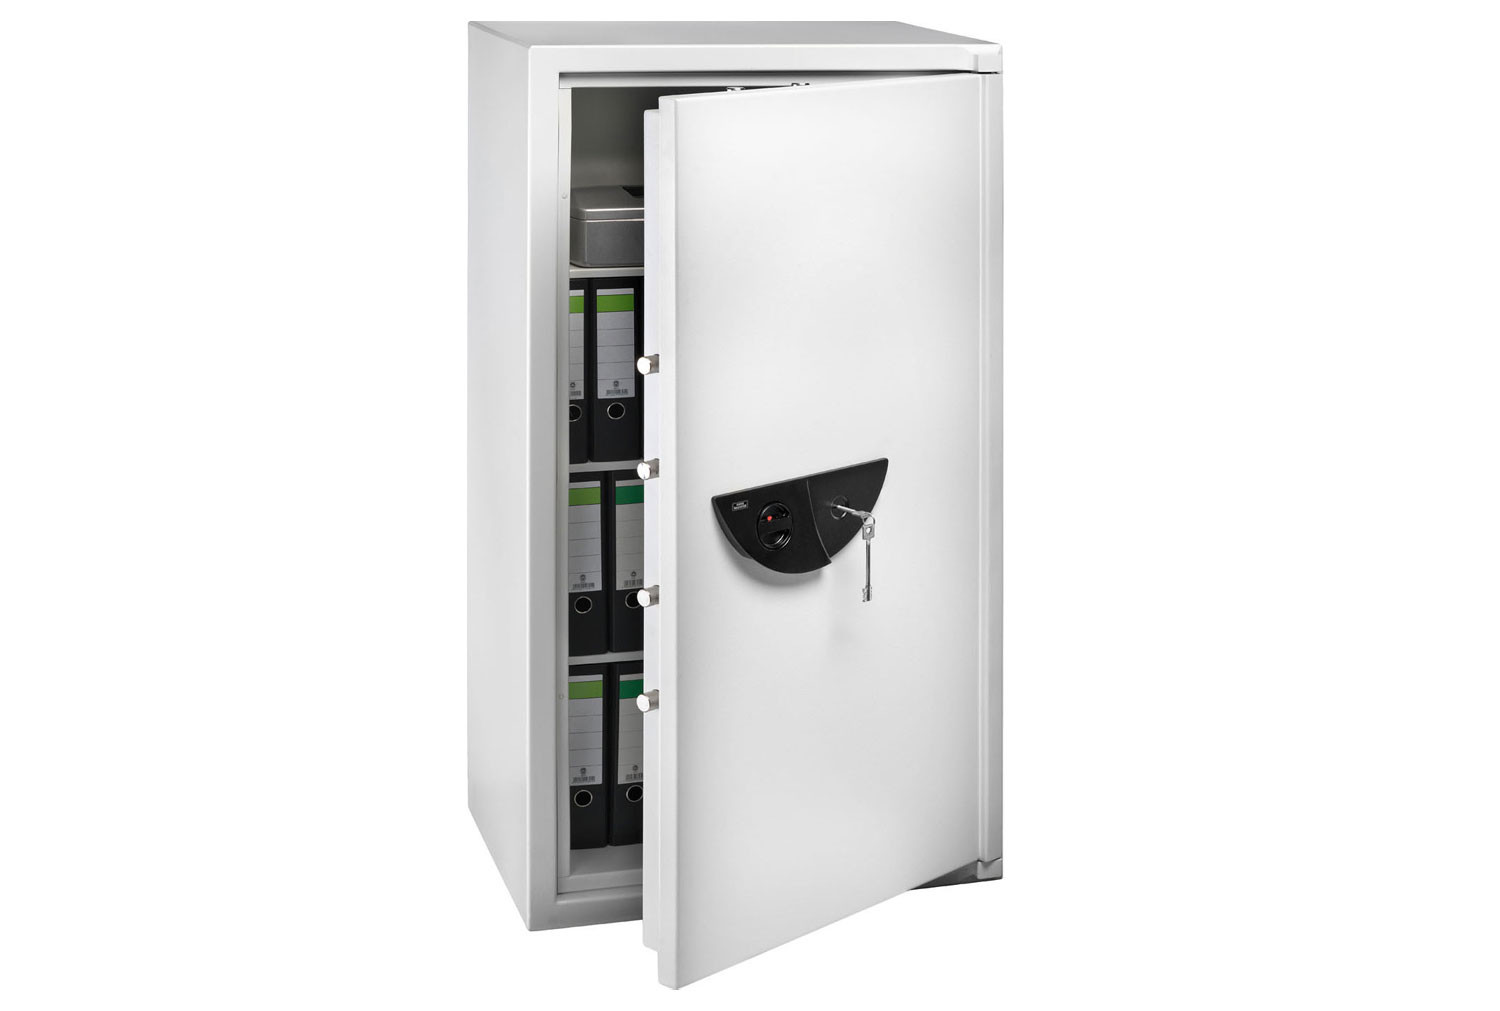 Burg Wachter Officeline Office 116 S Safety Cabinet With Key Lock (315ltrs)